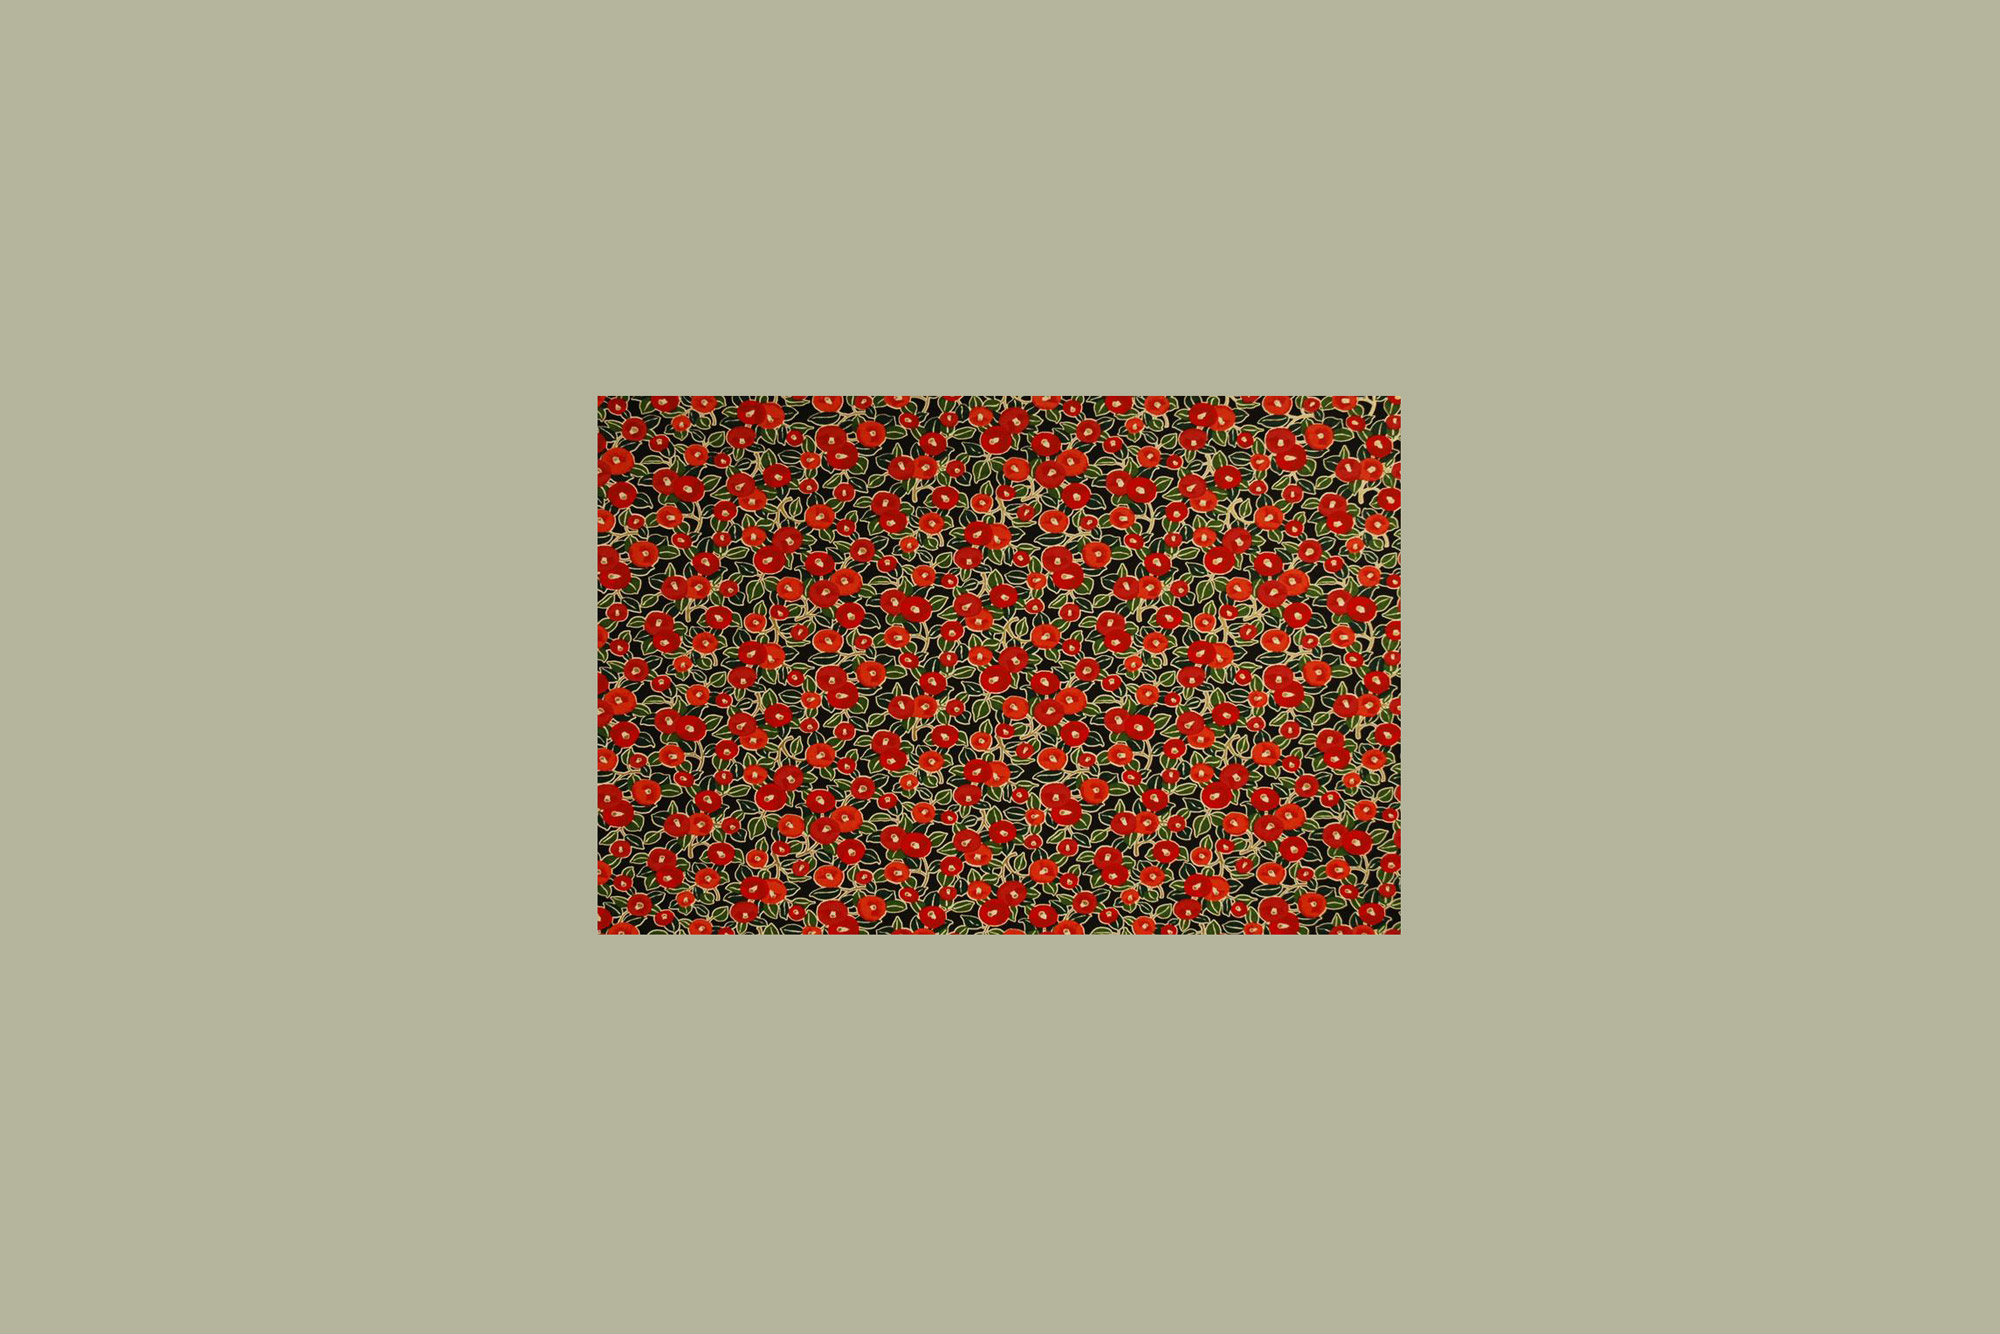 Chiyogami Red Coral Flowers